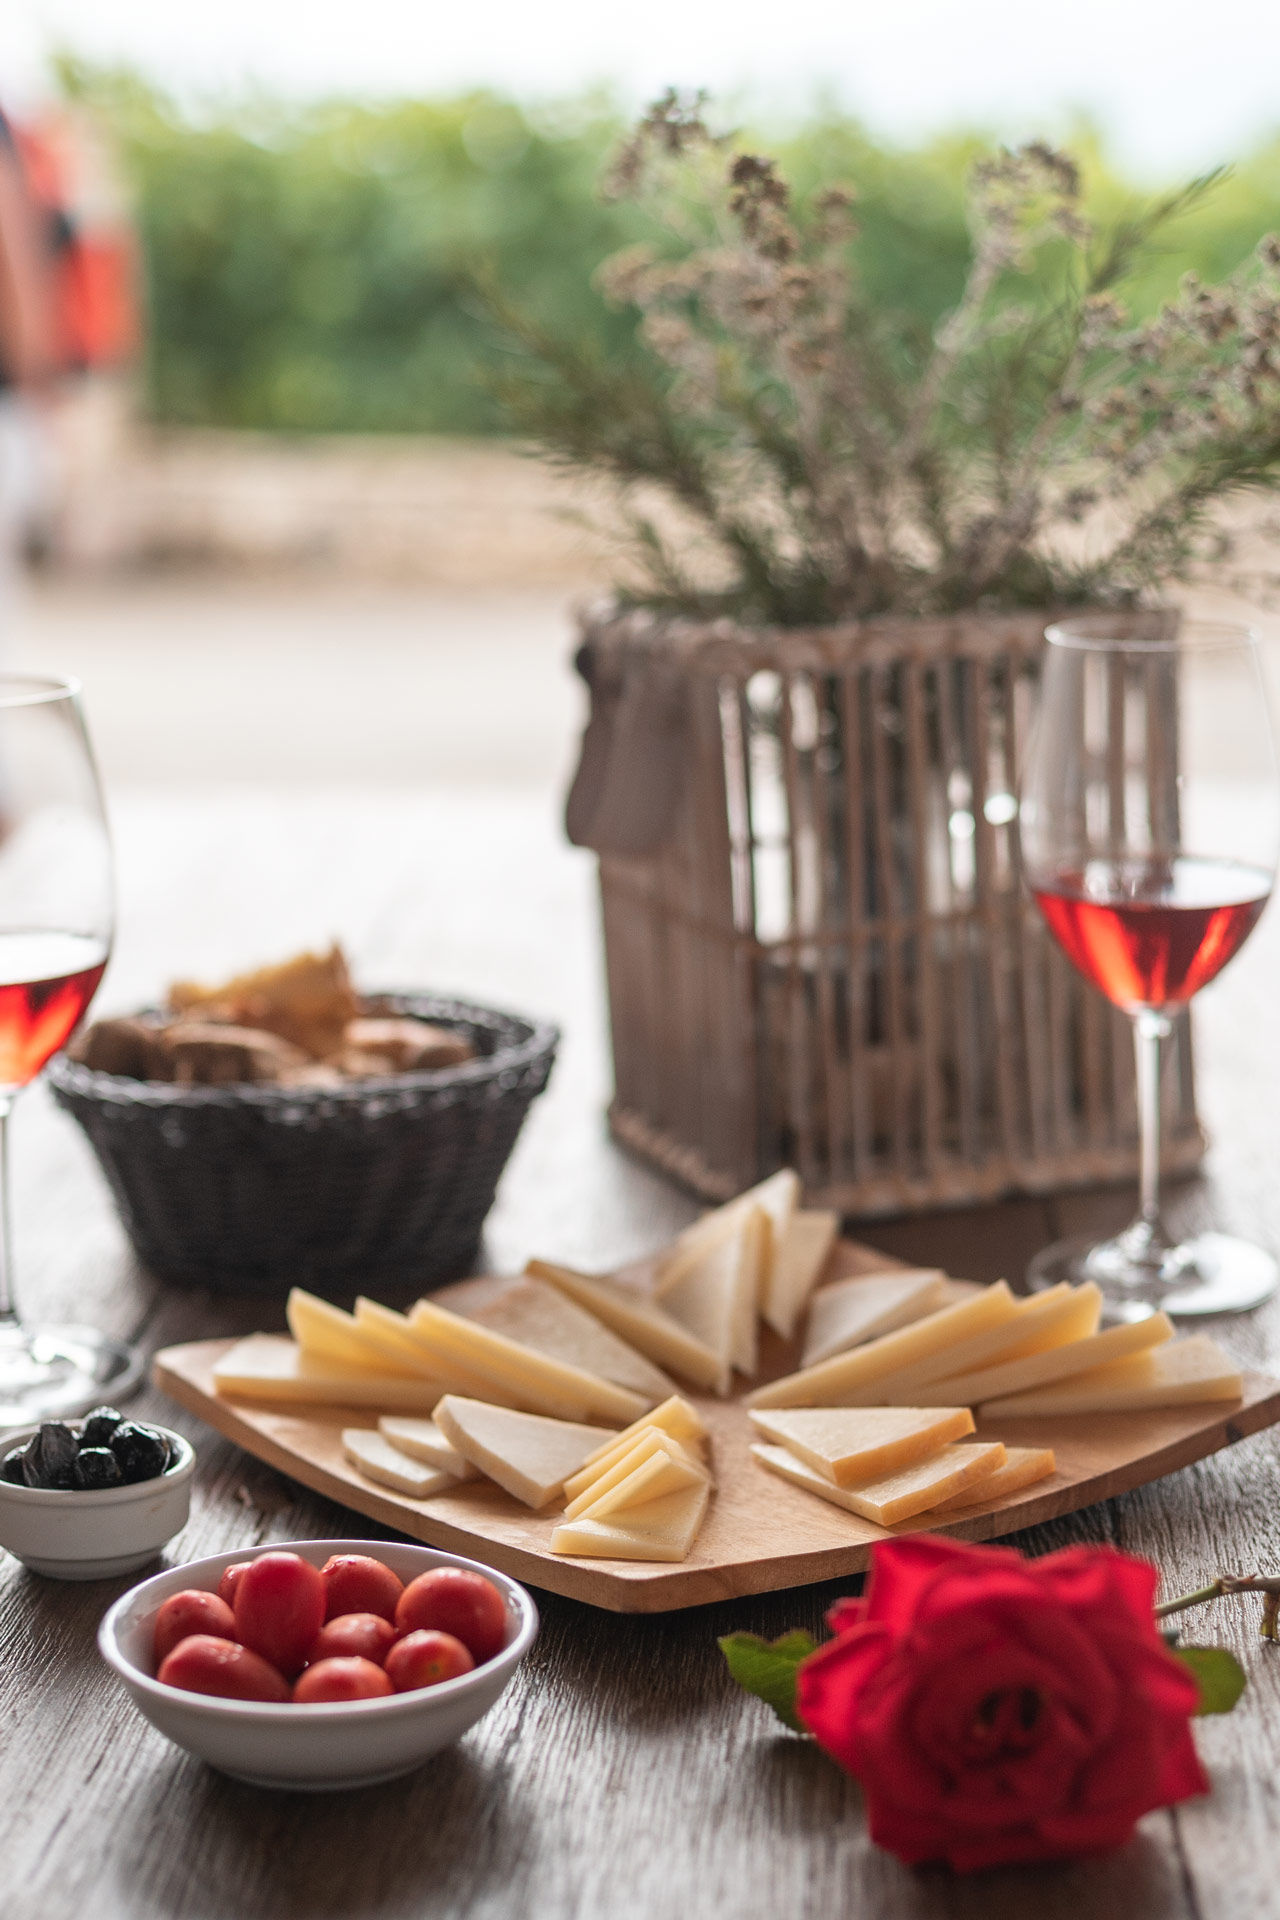 A wonderful set of local products with the famous red wine of Heraklion